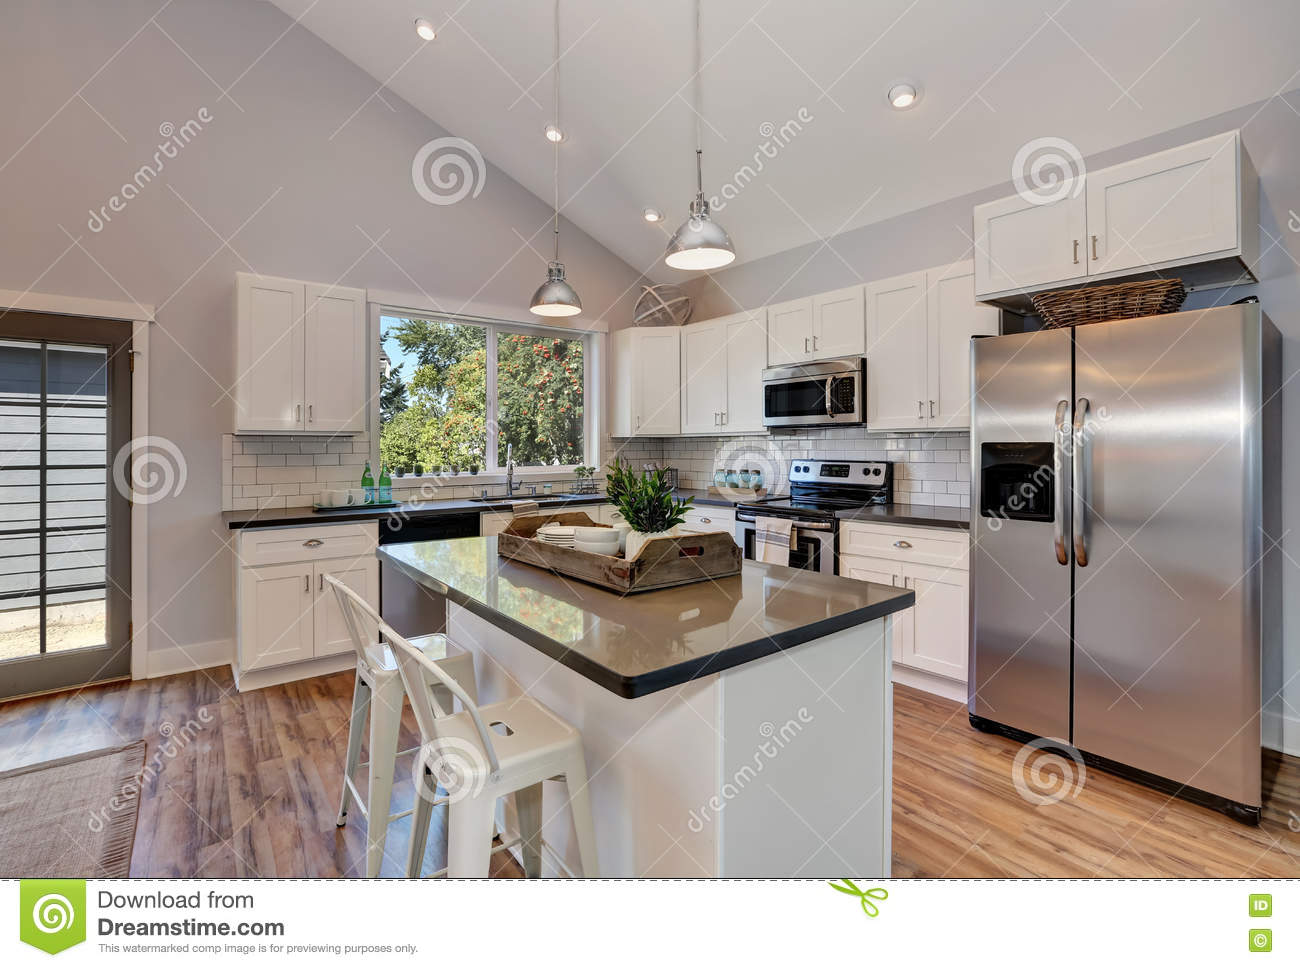 Furniture Bright High Vaulted Ceiling Kitchen Room With: Interior Of Kitchen Room With High Vaulted Ceiling. Stock